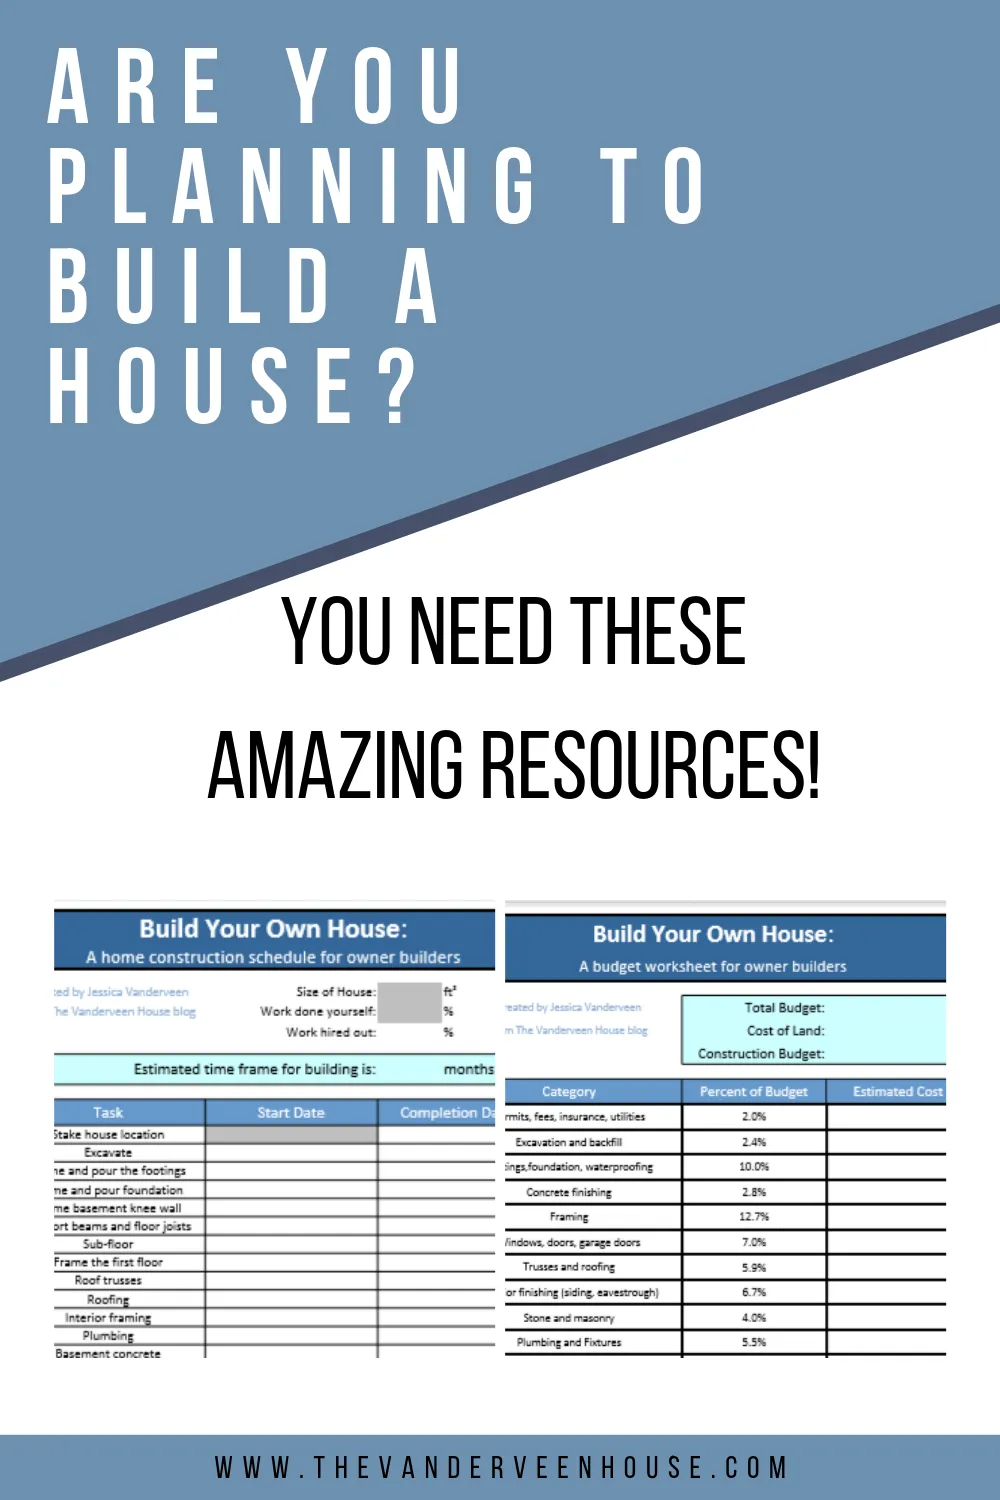 House Construction Schedule And Budget Worksheet Building A House Checklist Building A House Build Your Own House